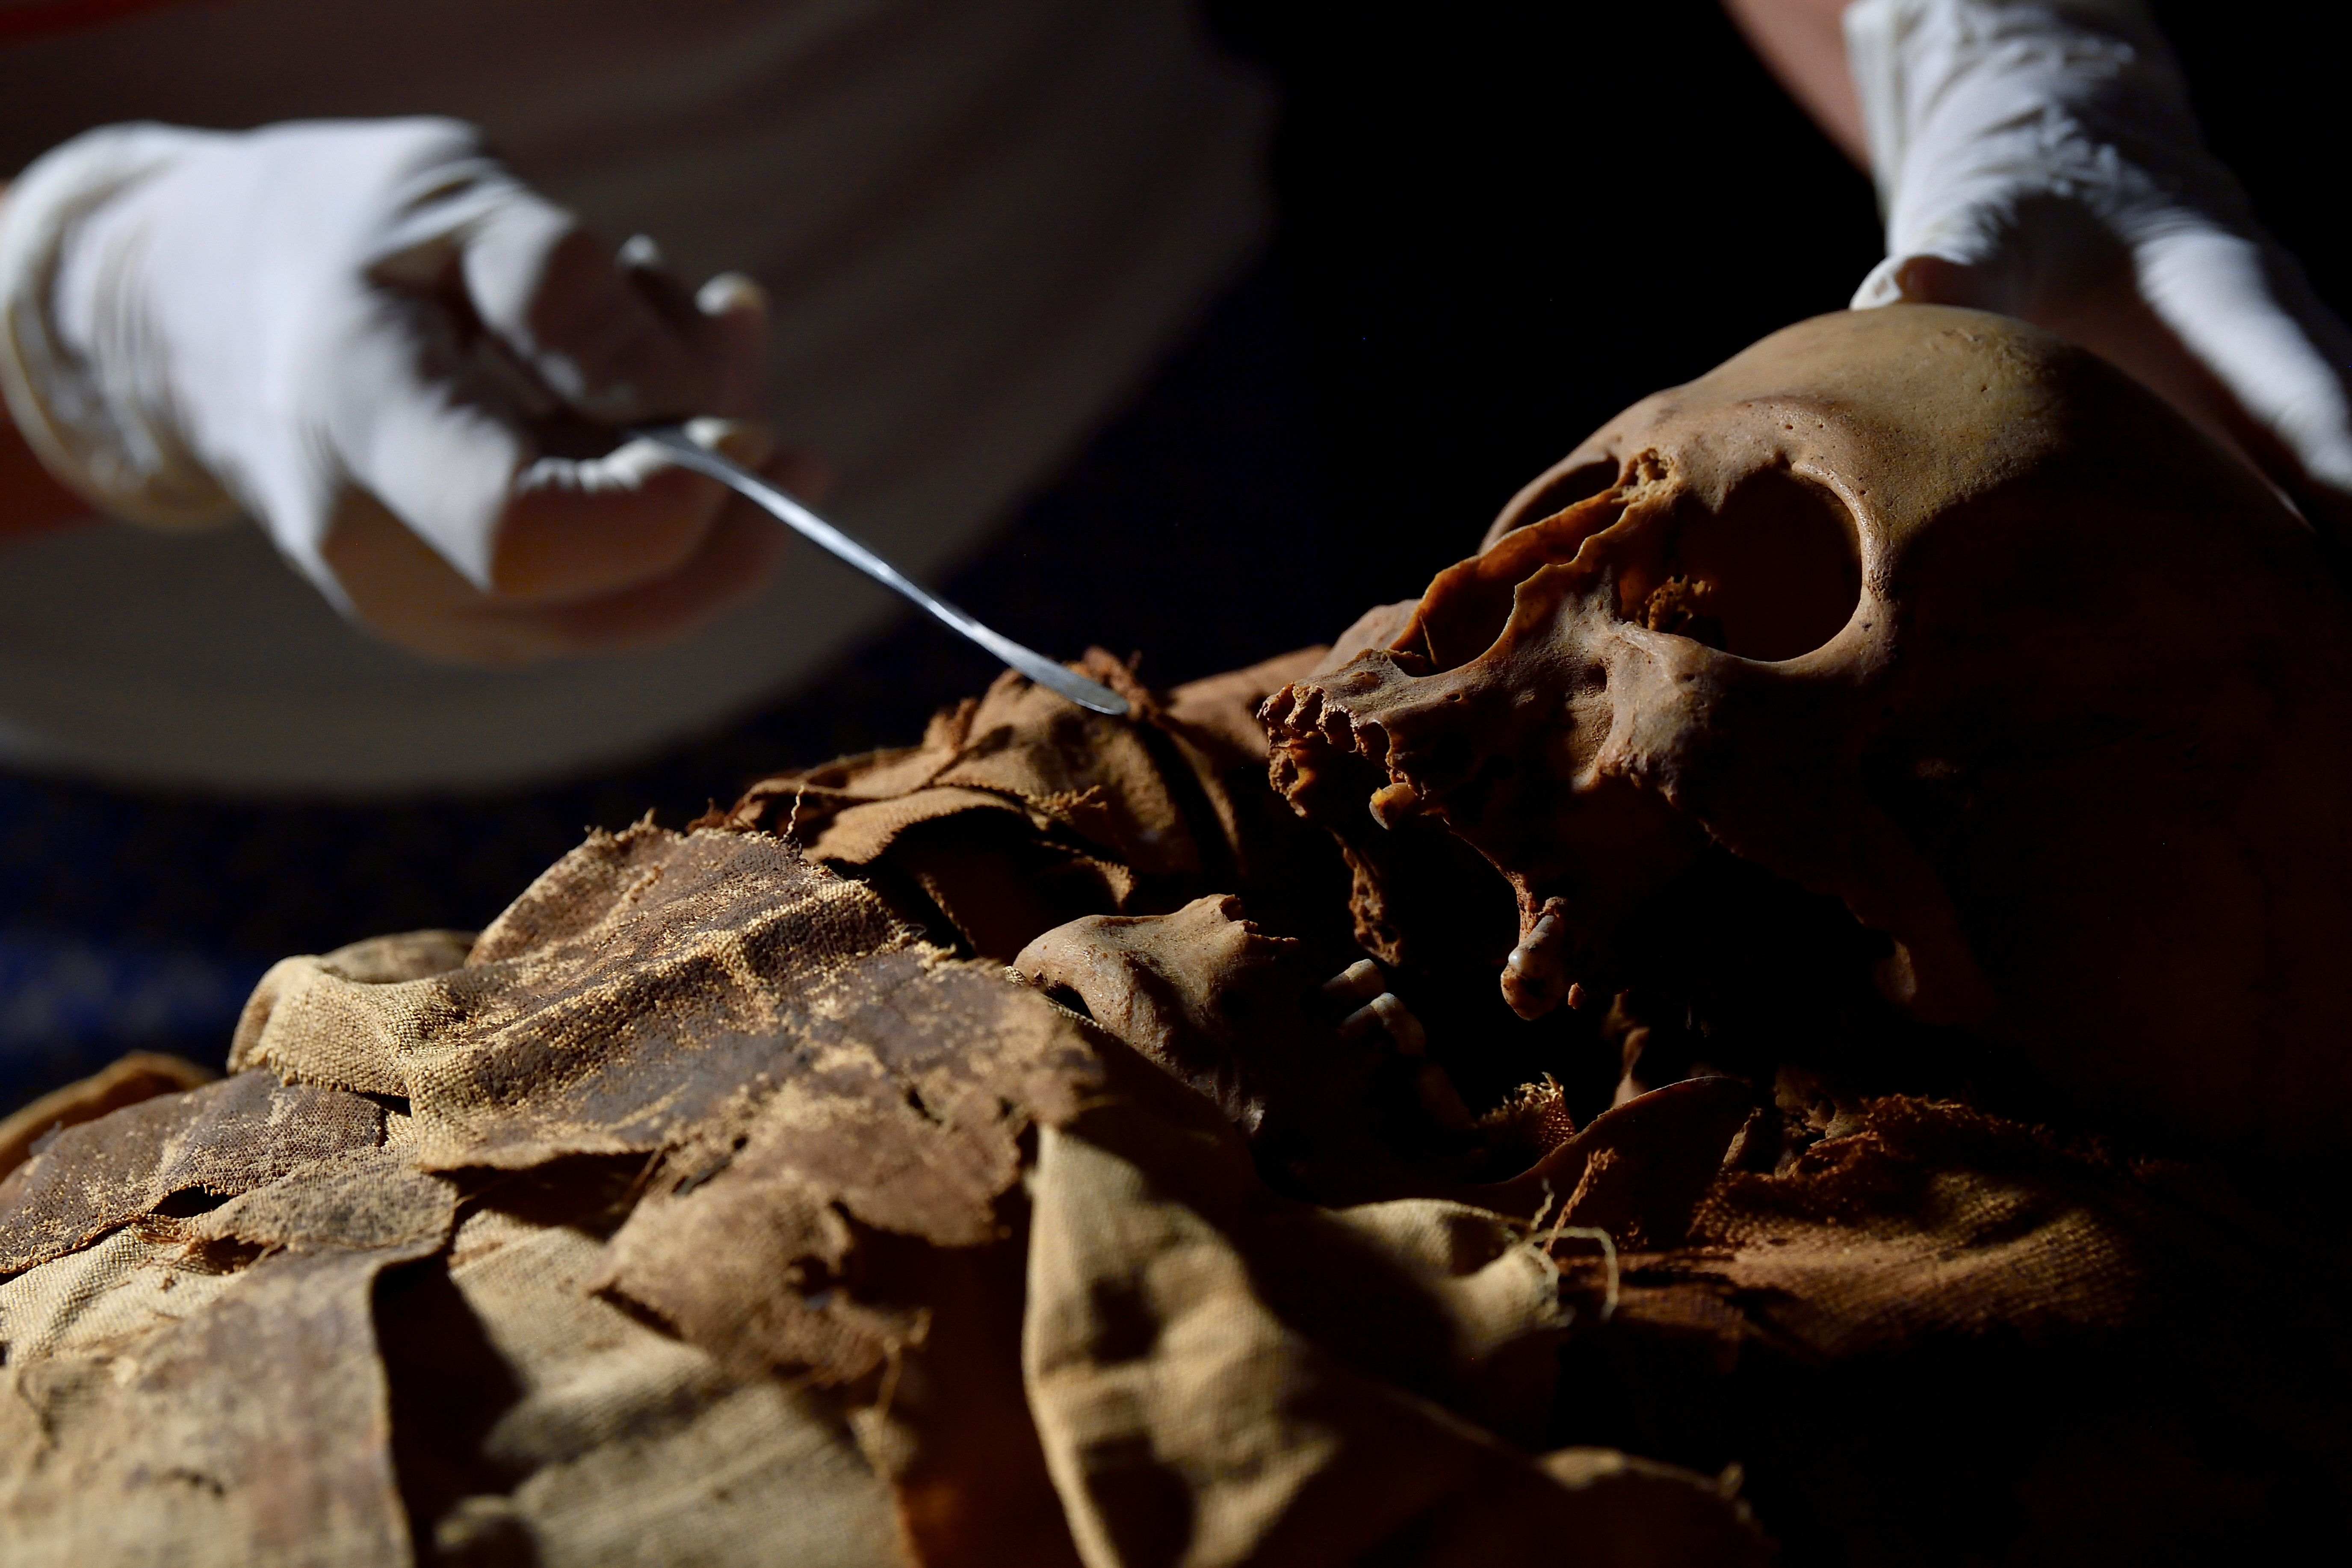 A researcher prepares to move an Egyptian mummy from the Civic Archaeological Museum of Bergamo to Milan's Policlinico hospital to undergo a CT scan in order to investigate its history, in Bergamo, Italy, June 21, 2021. REUTERS/Flavio Lo Scalzo